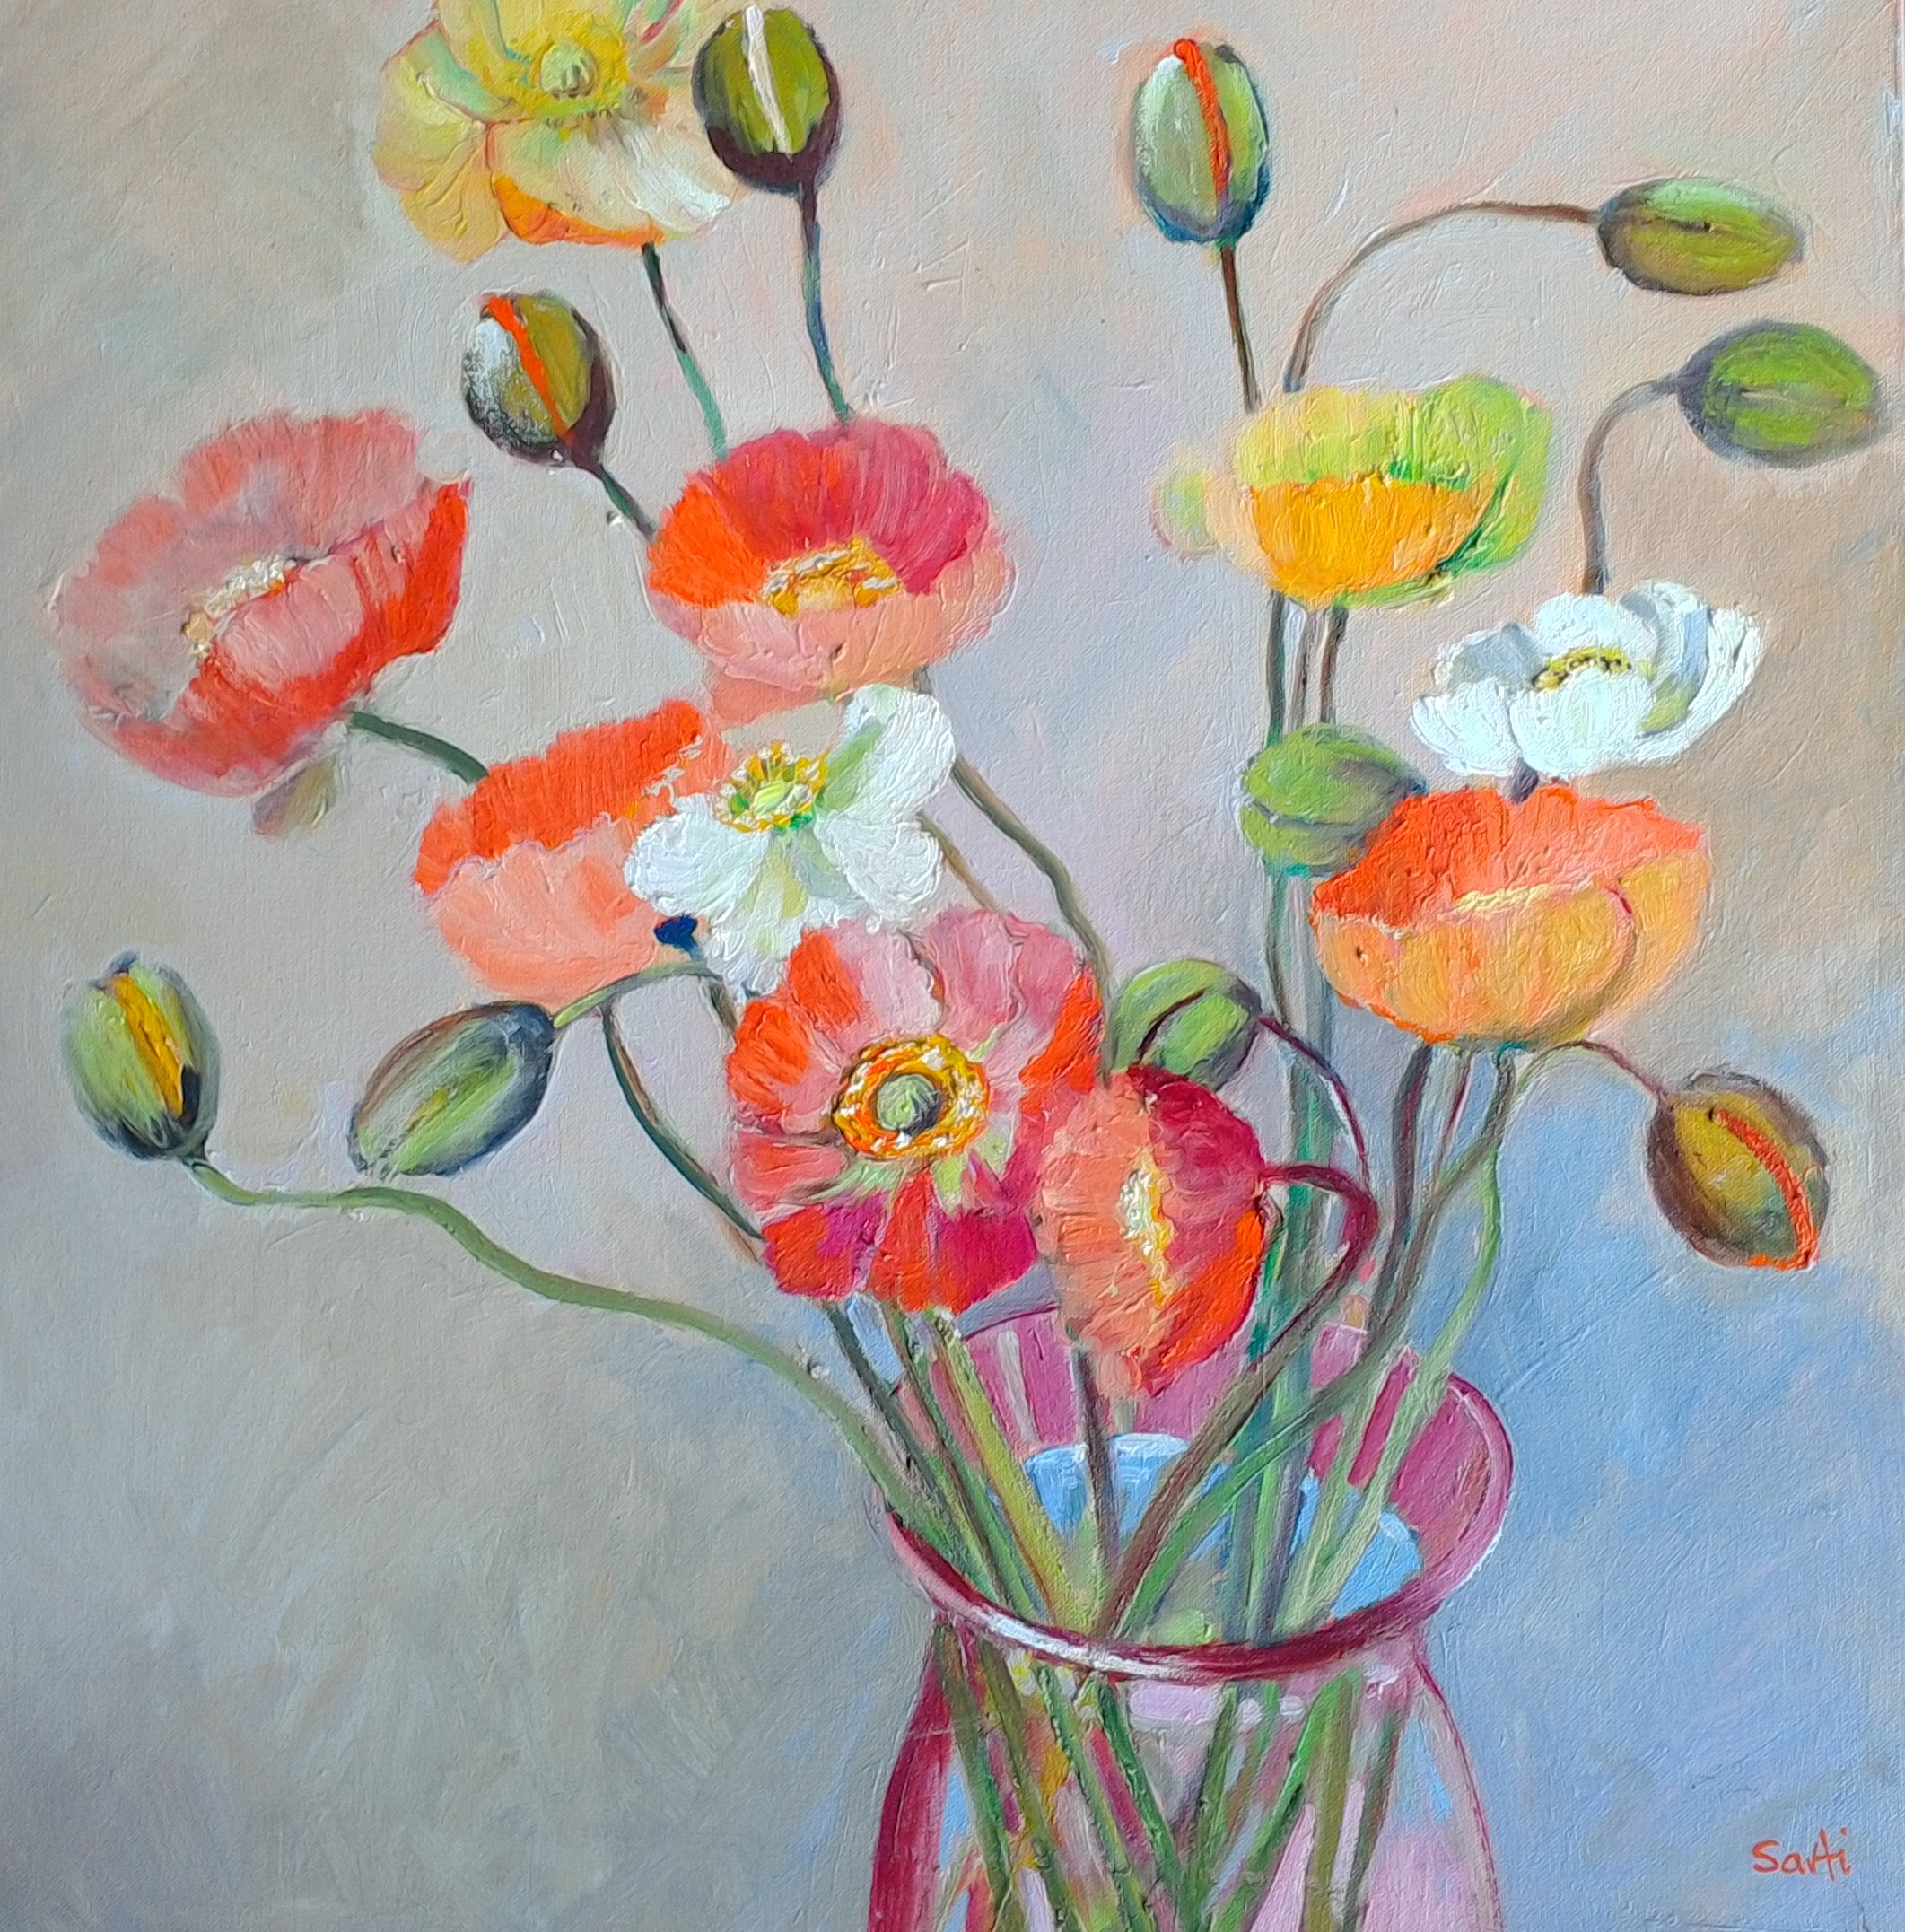 Poppies oil on canvas 54x54cm $500.